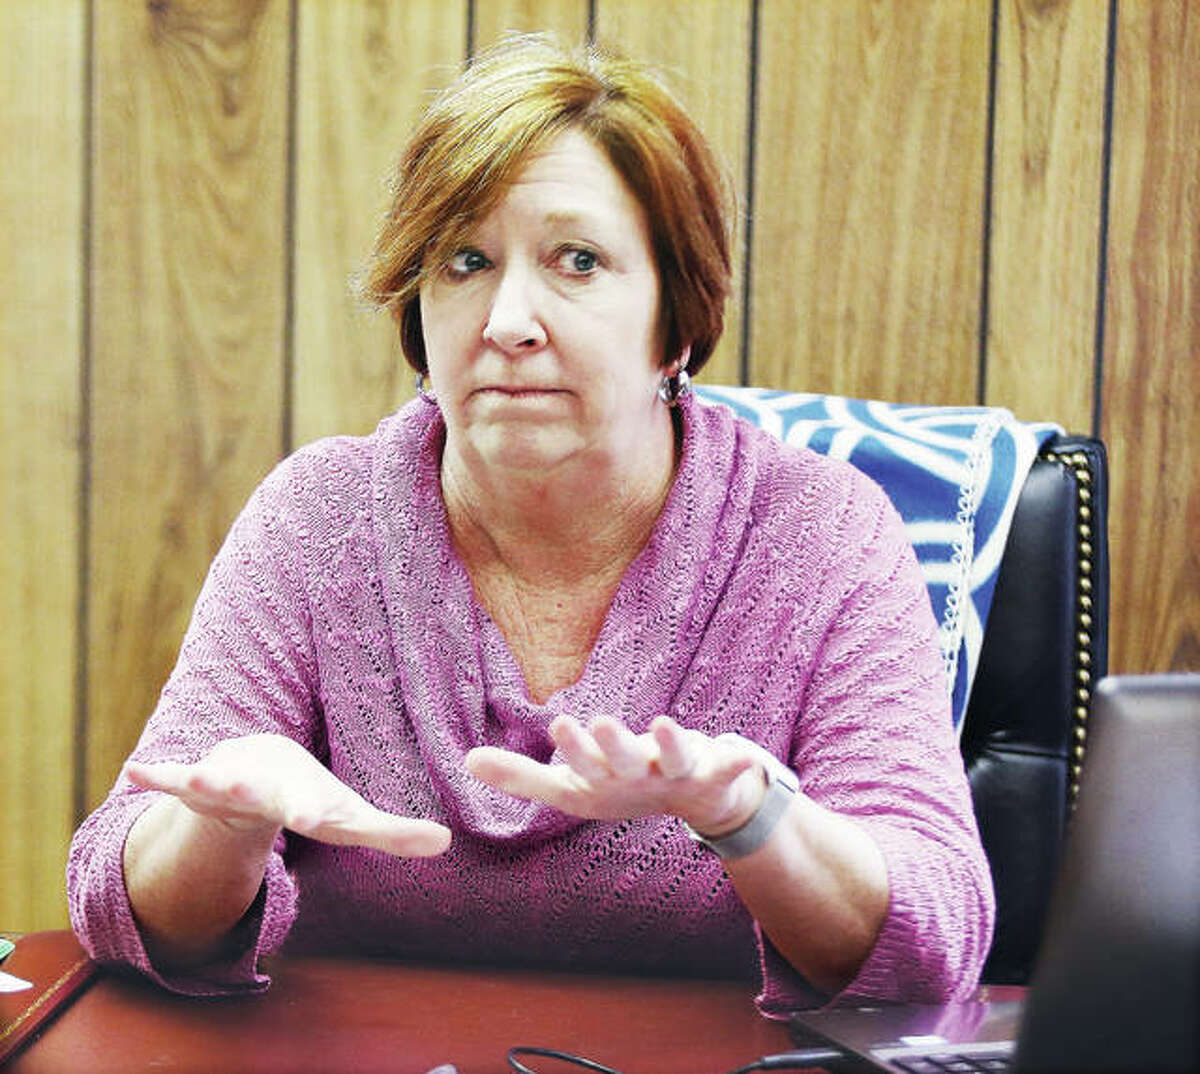 New Illinois 111th District Rep. Monica Bristow talks about her plans as she prepares for her first House session in the seat of former state Rep. Dan Beiser.